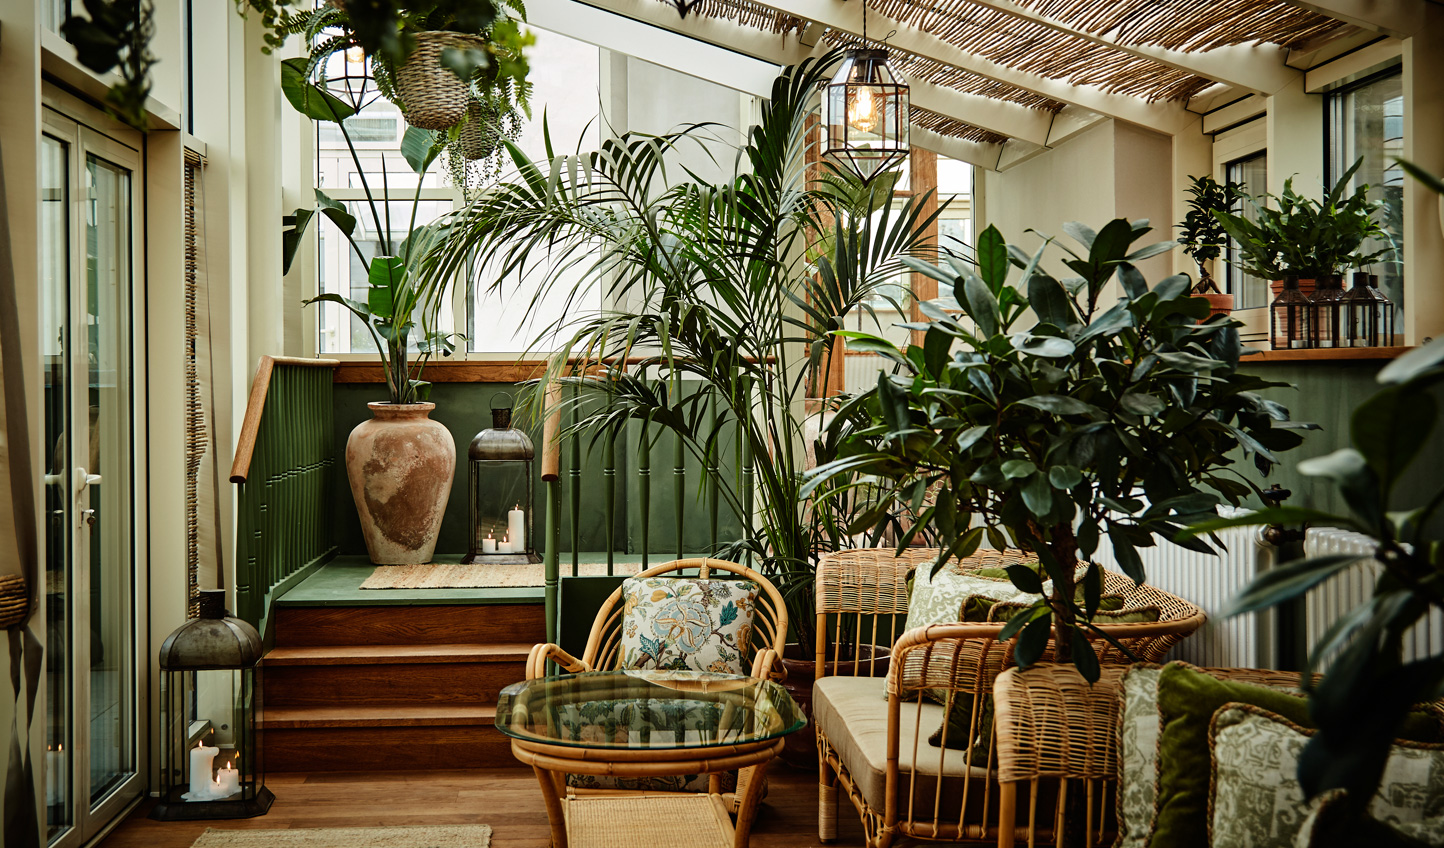 Escape the pace of city life at Sanders Conservatory